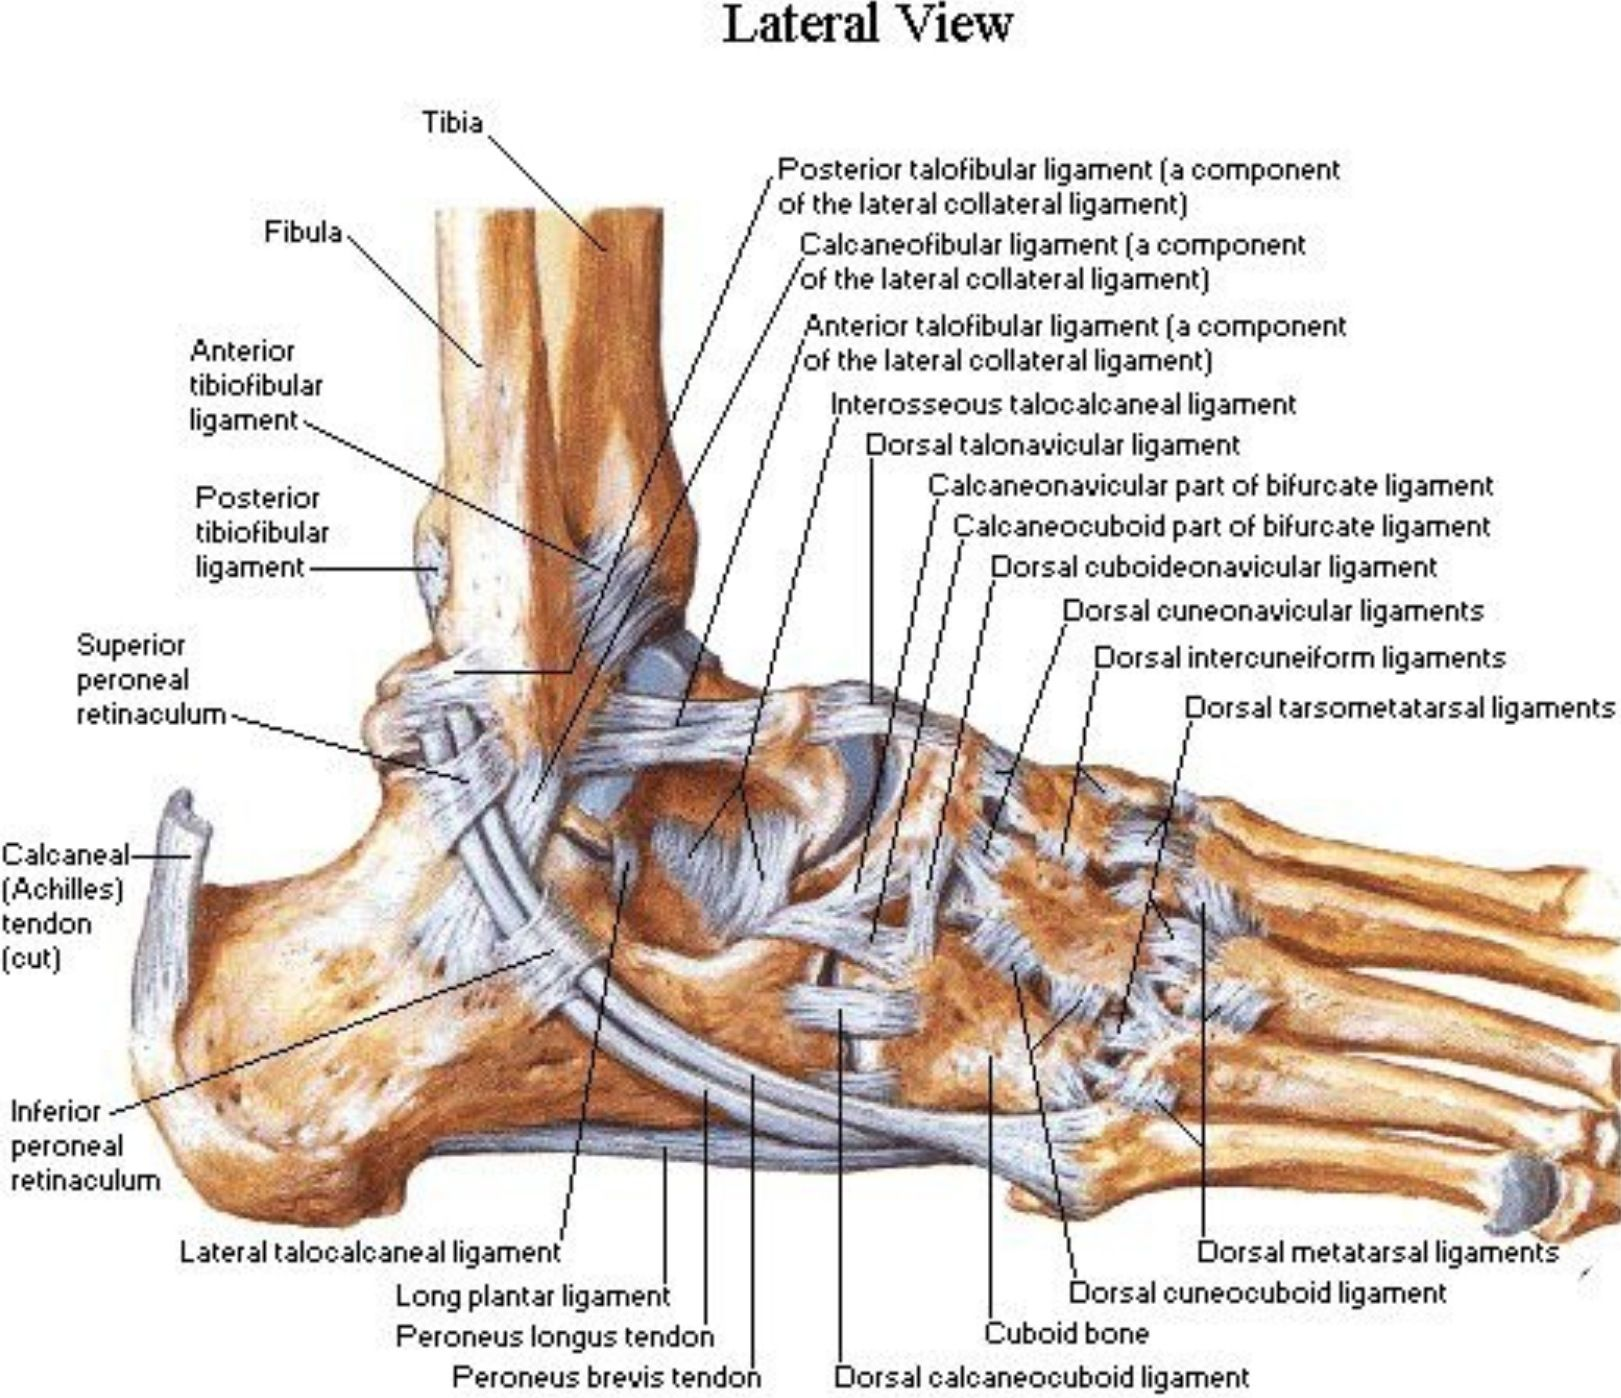 lateral aspect of the ankle ligaments netter [ 1621 x 1398 Pixel ]